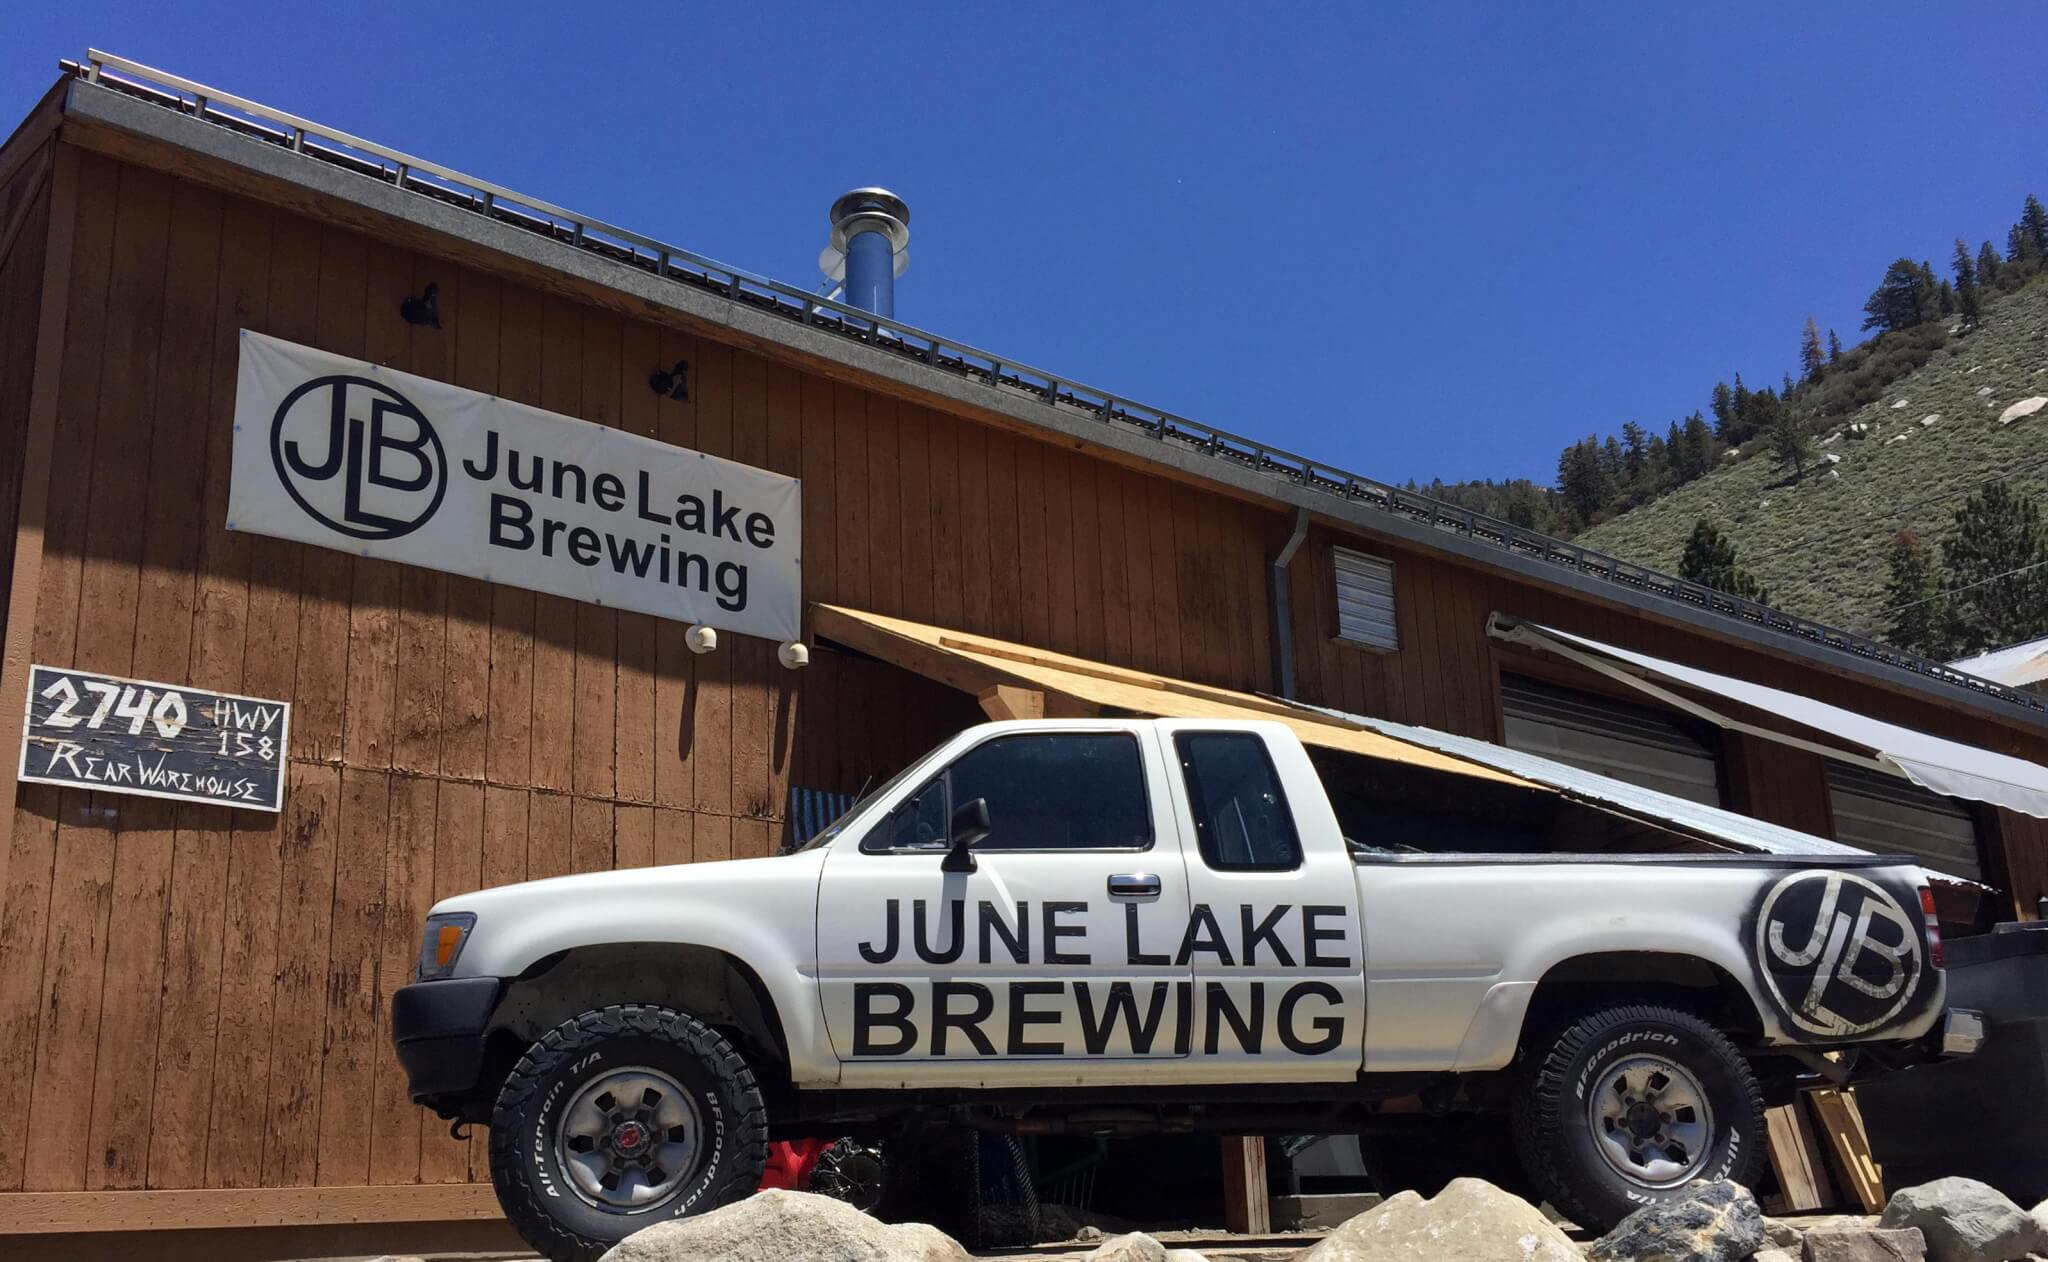 Garage Brewing Truck The Man Behind June Lake Brewing And Of Course Amazing Beer